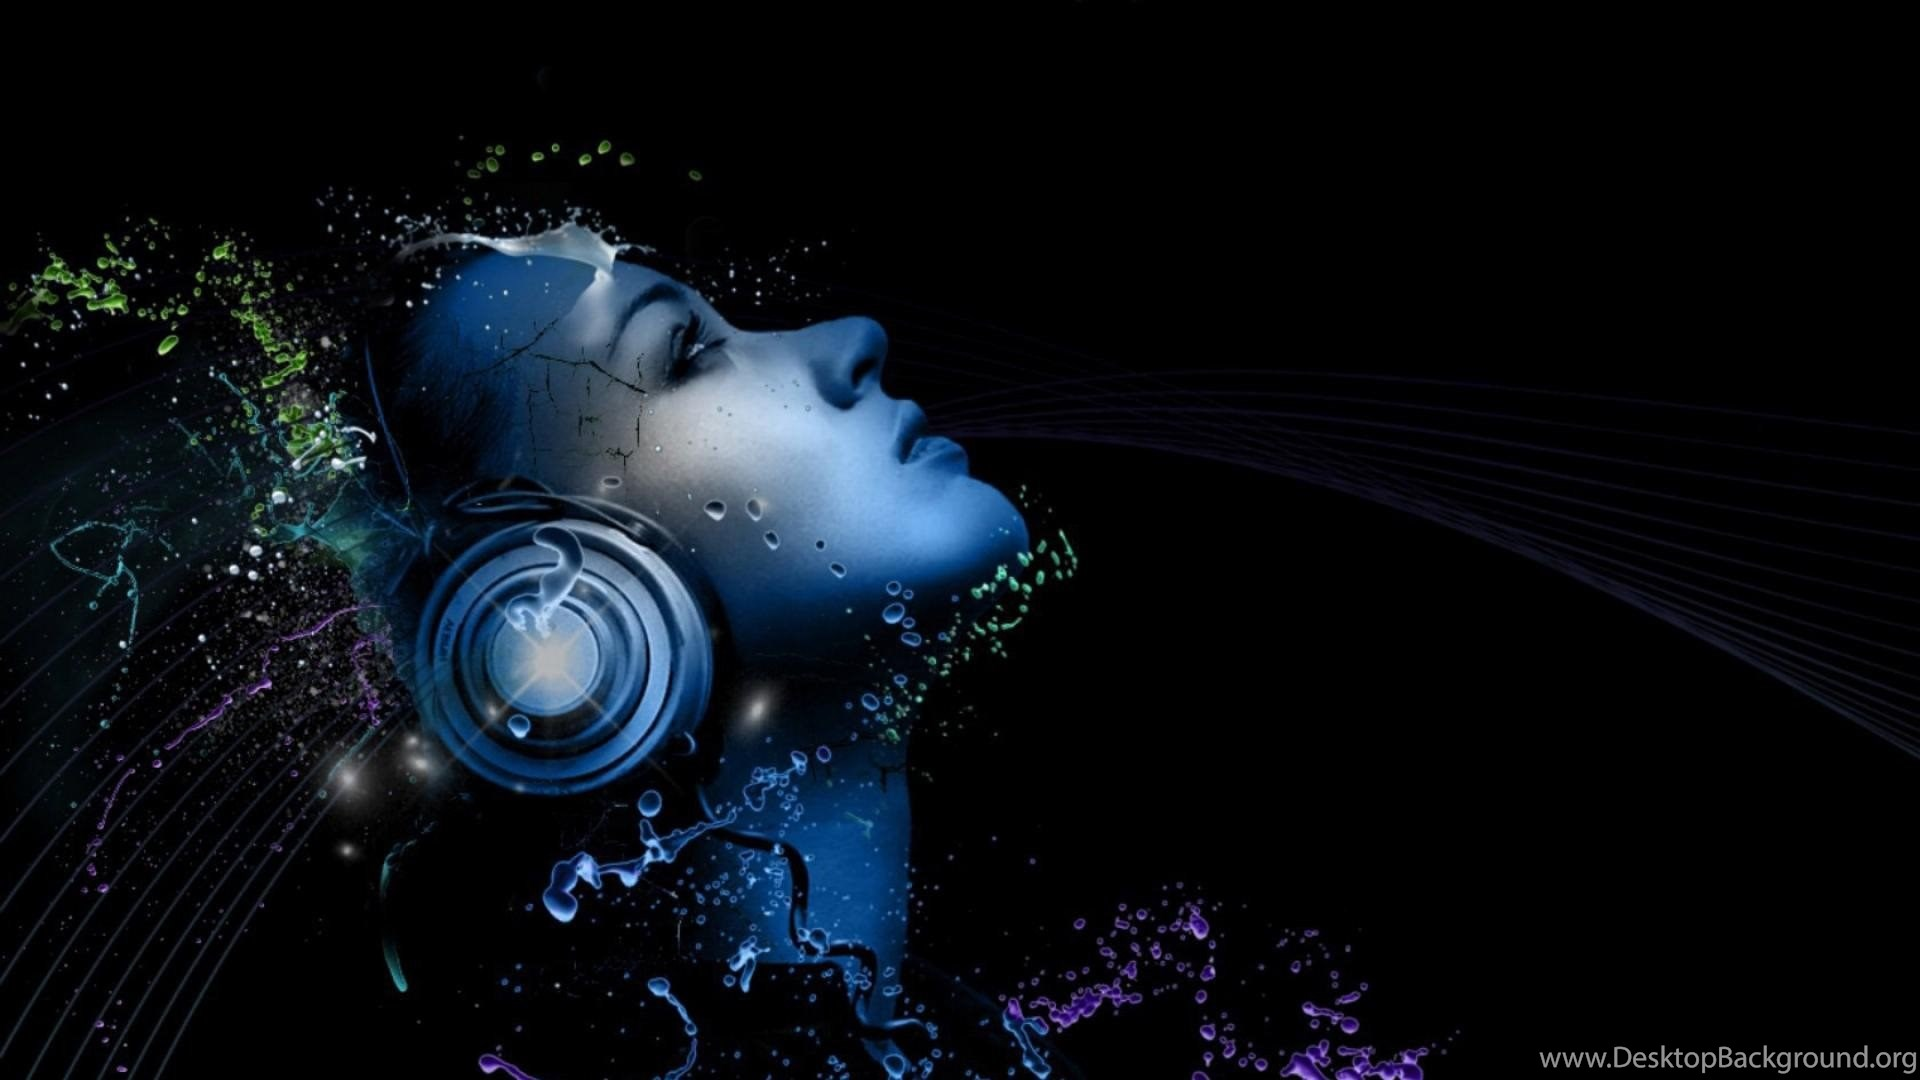 Wallpapers cute eyes headphones women pin abstract music djs party popular voltagebd Images